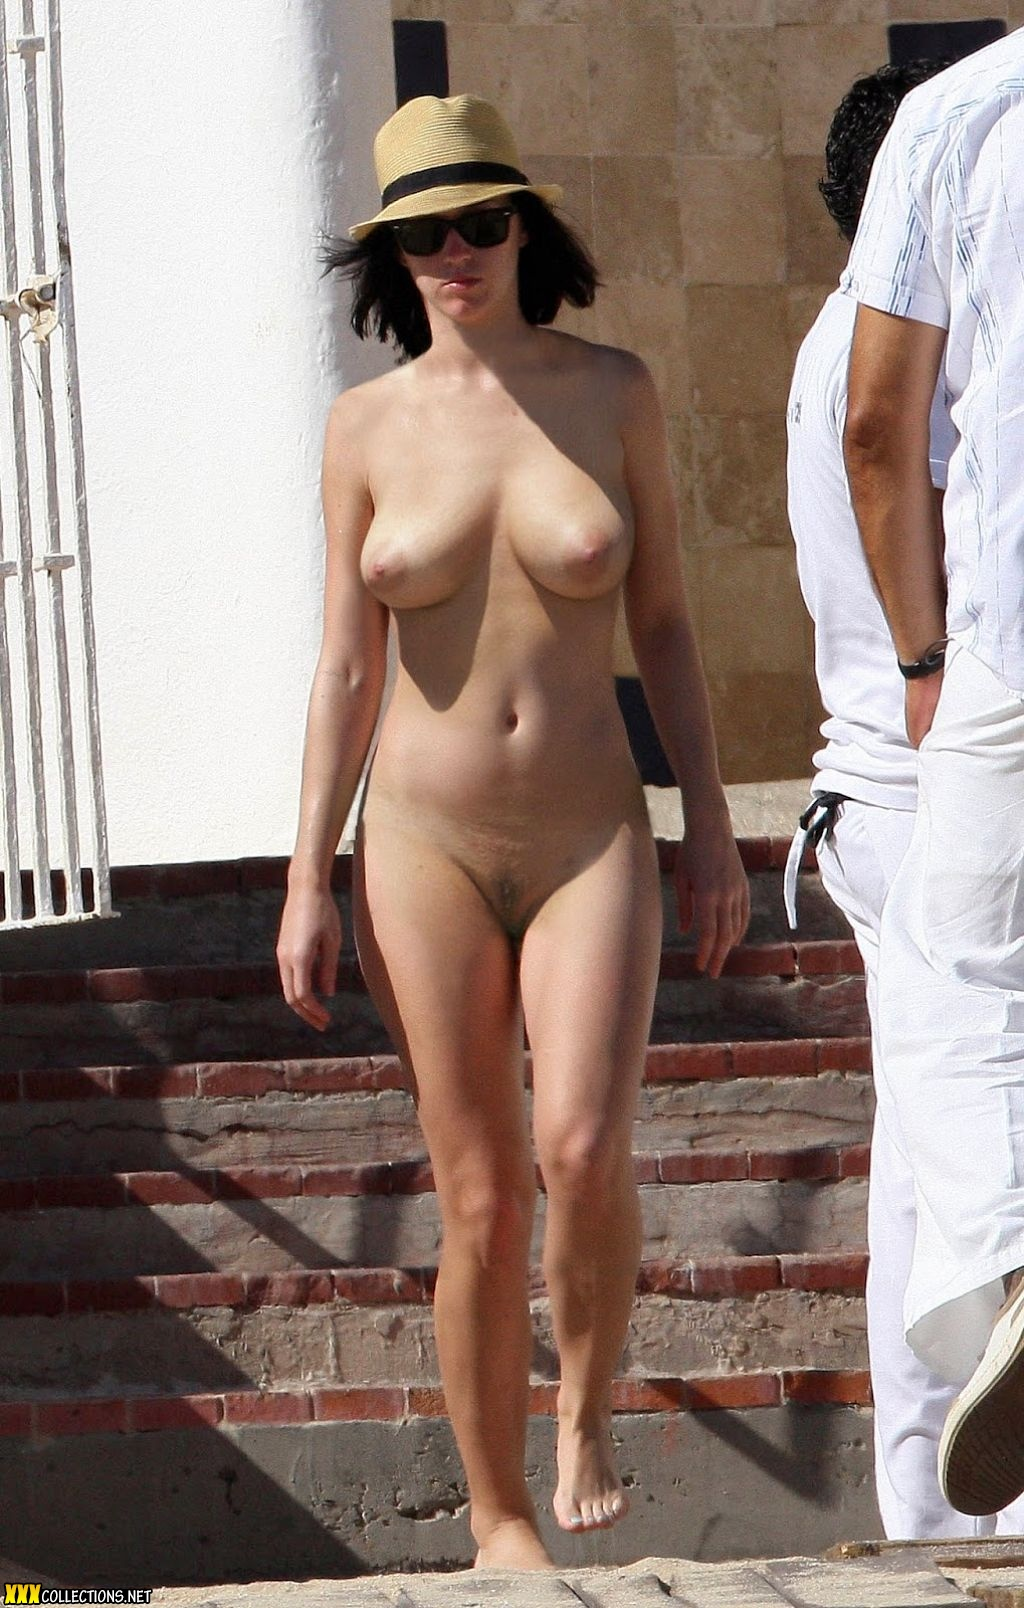 Katy perry nude sex